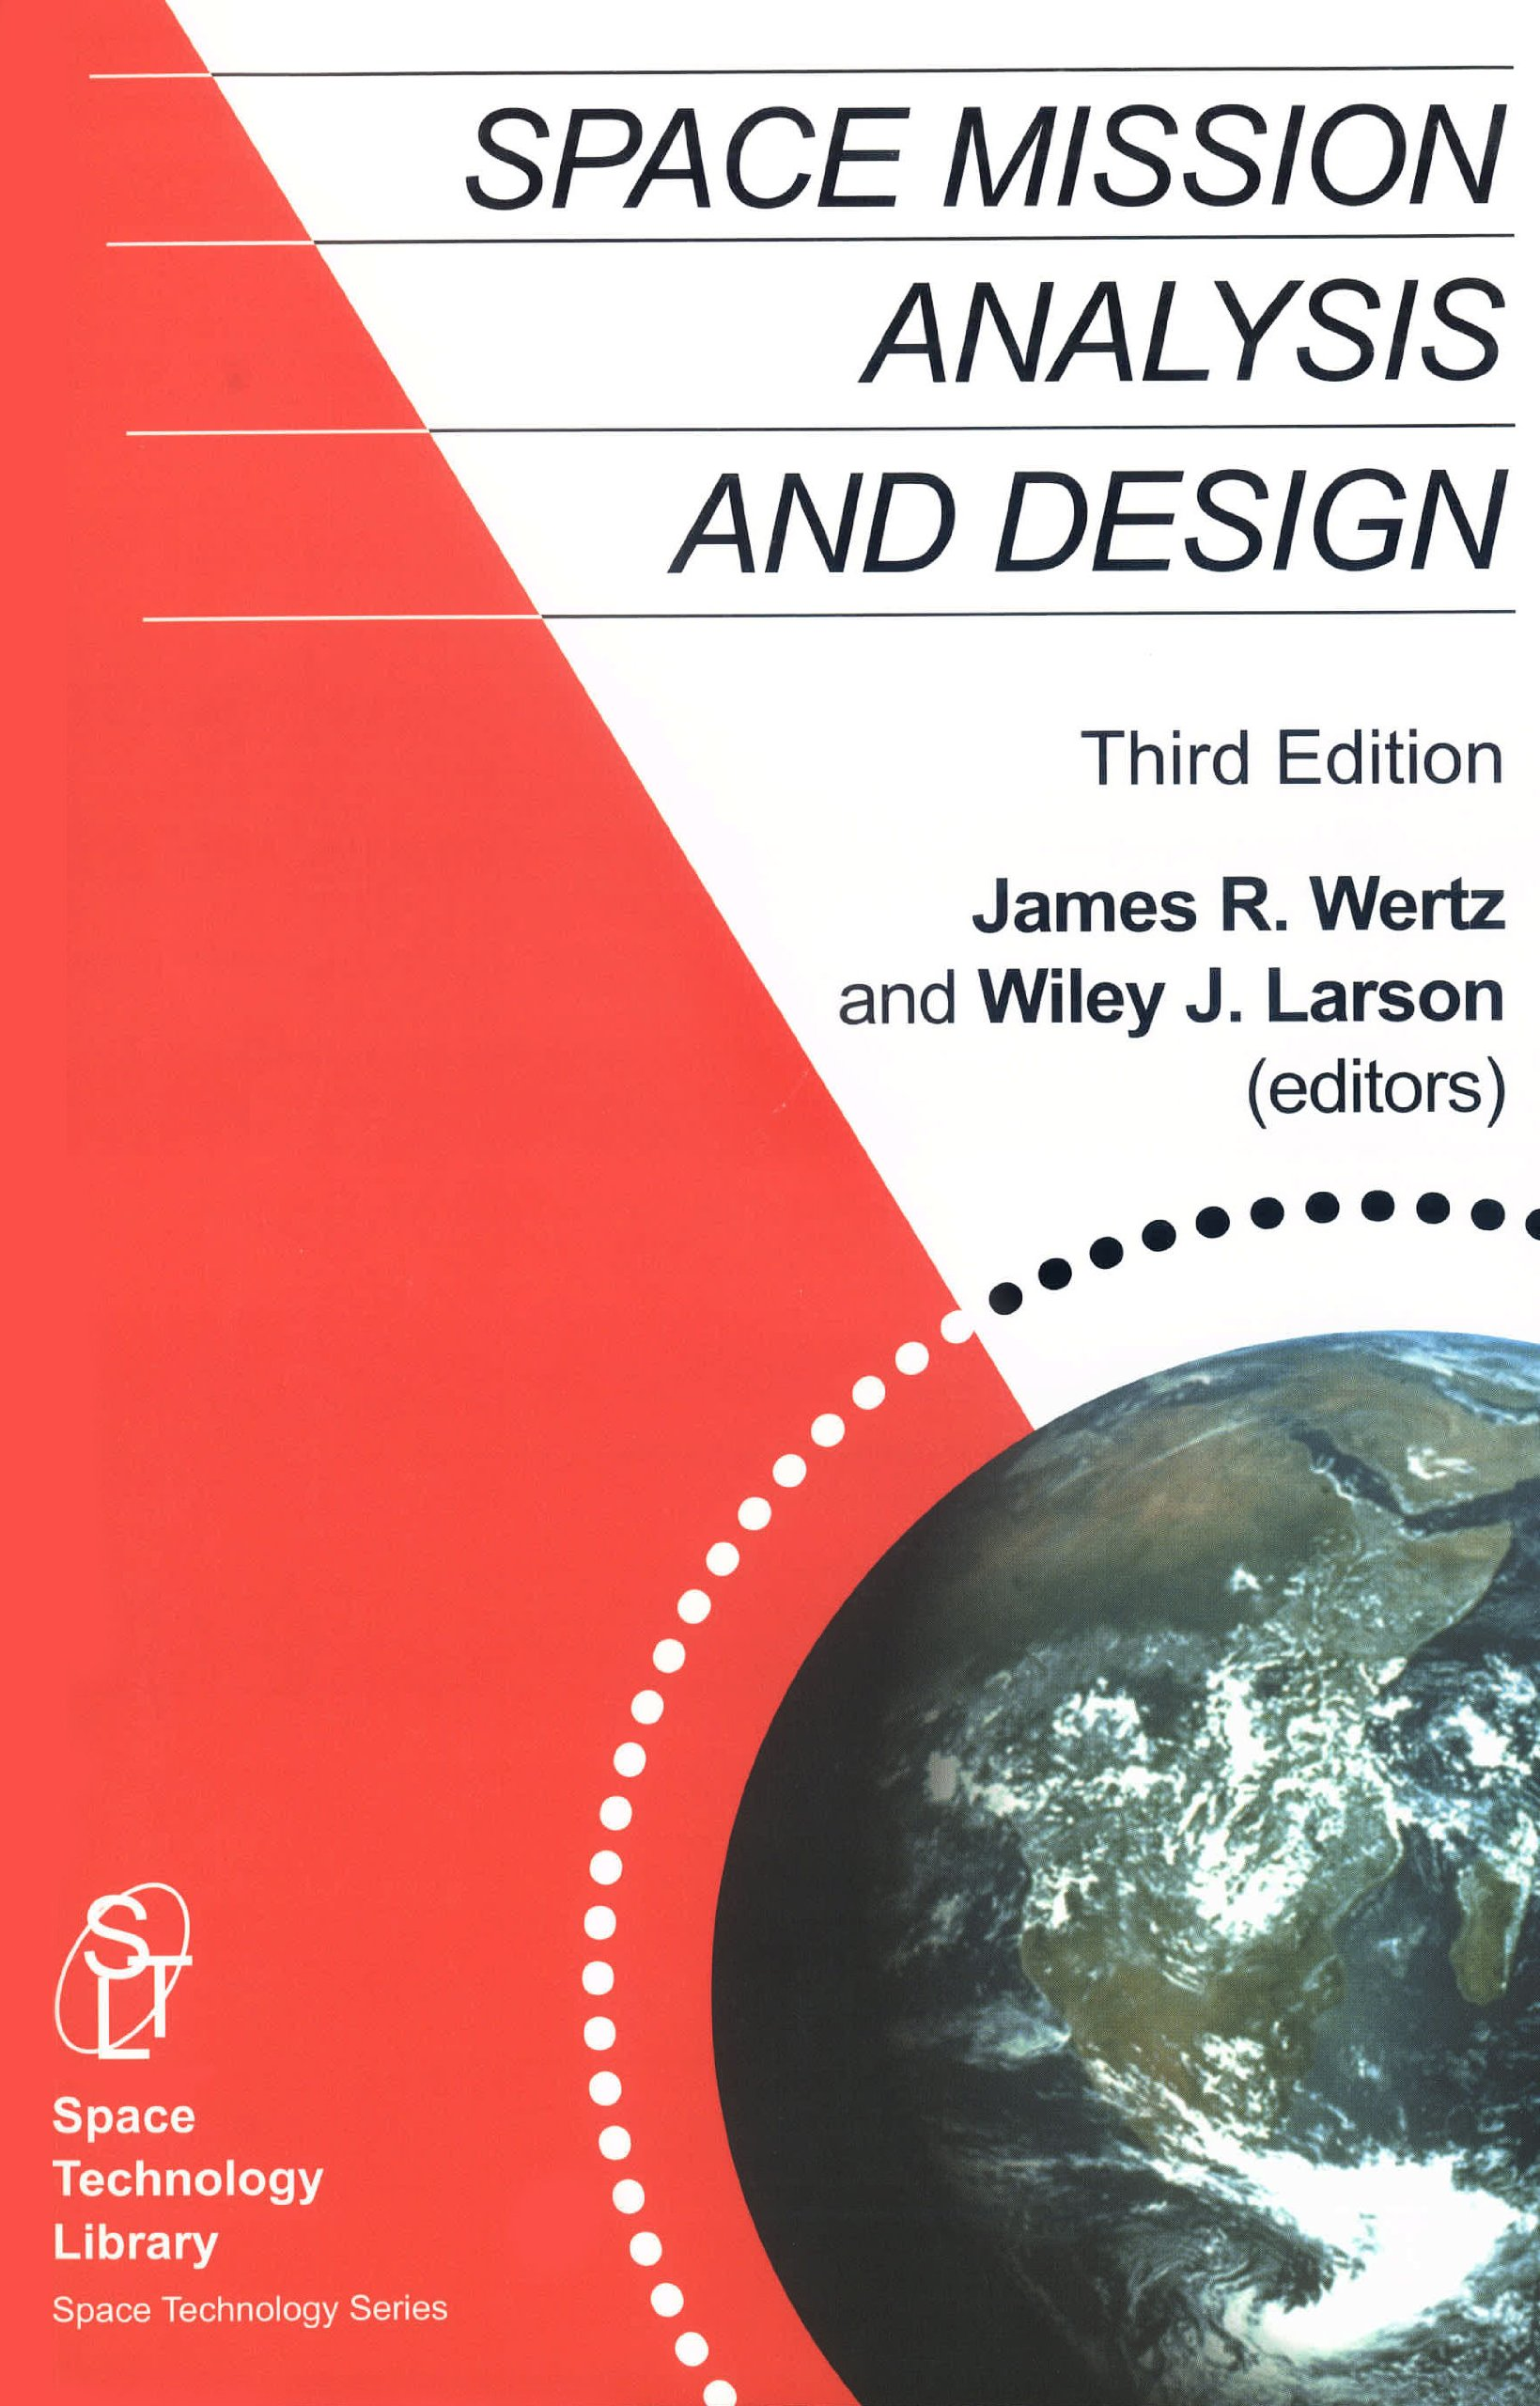 Buy Space Mission Analysis And Design Technology Library Wiring For Front Component Speakersimg13661jpg Book Online At Low Prices In India